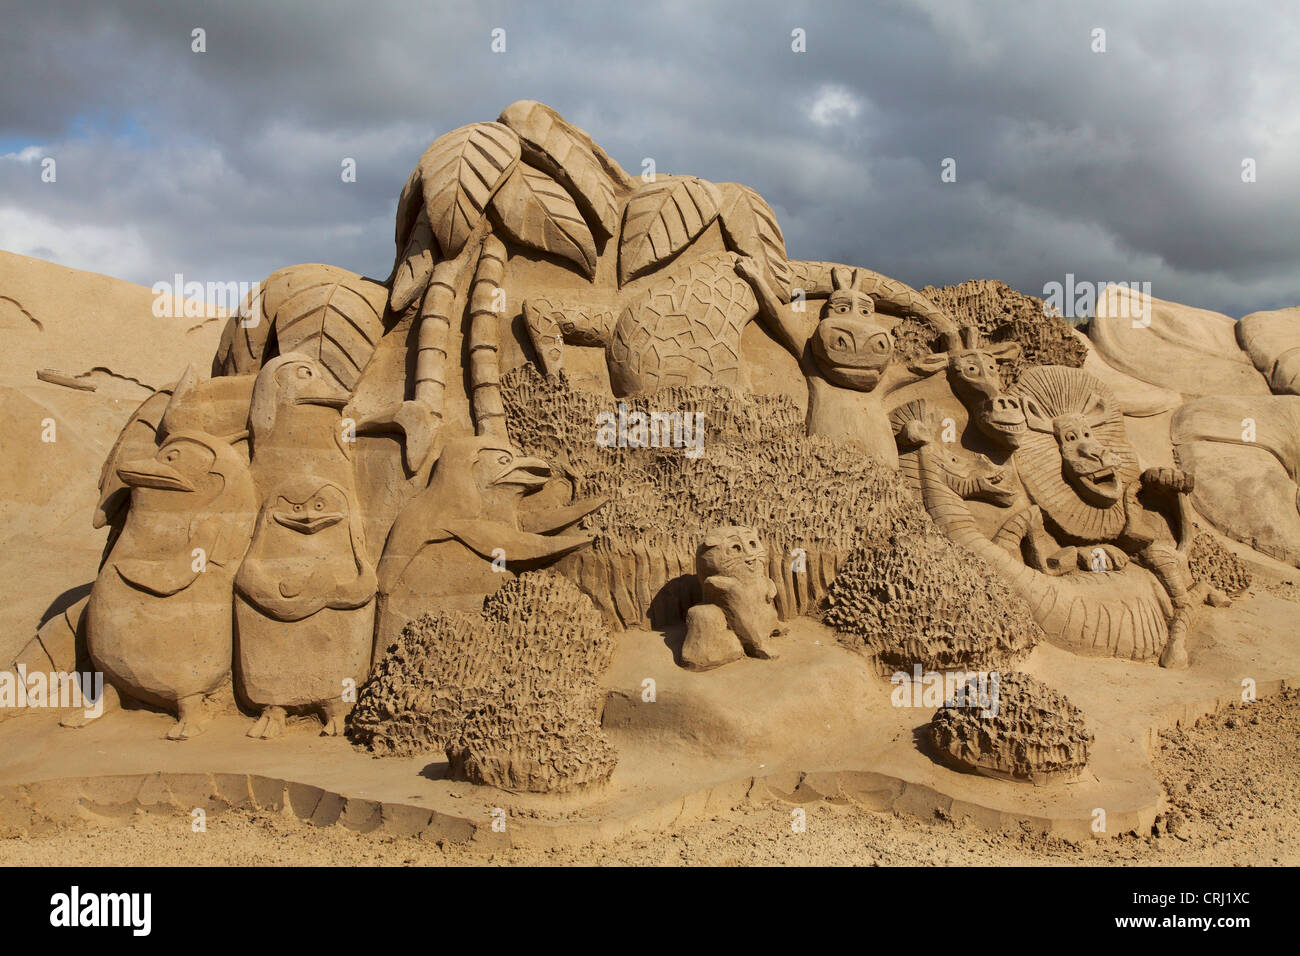 sand sculpture, Netherlands, Texel - Stock Image